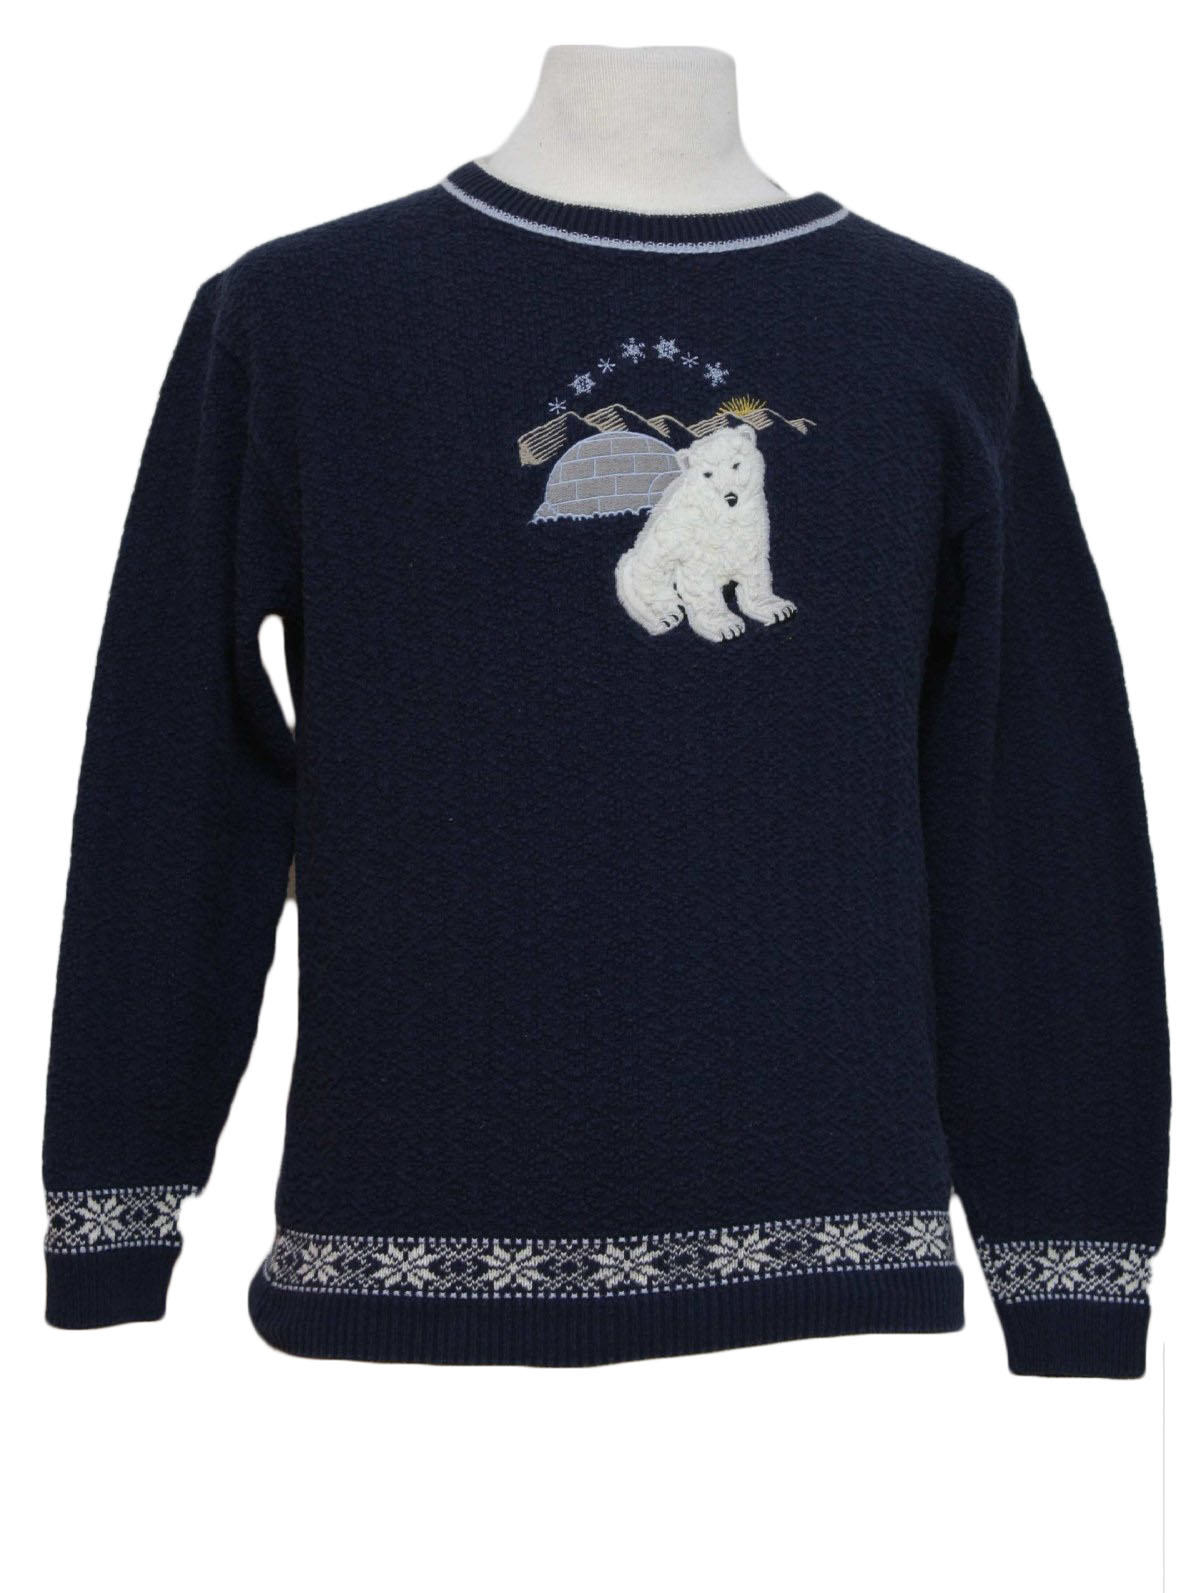 4bb4774f6 Ugly Christmas Sweater  -Northern Reflections- Unisex midnight blue ...